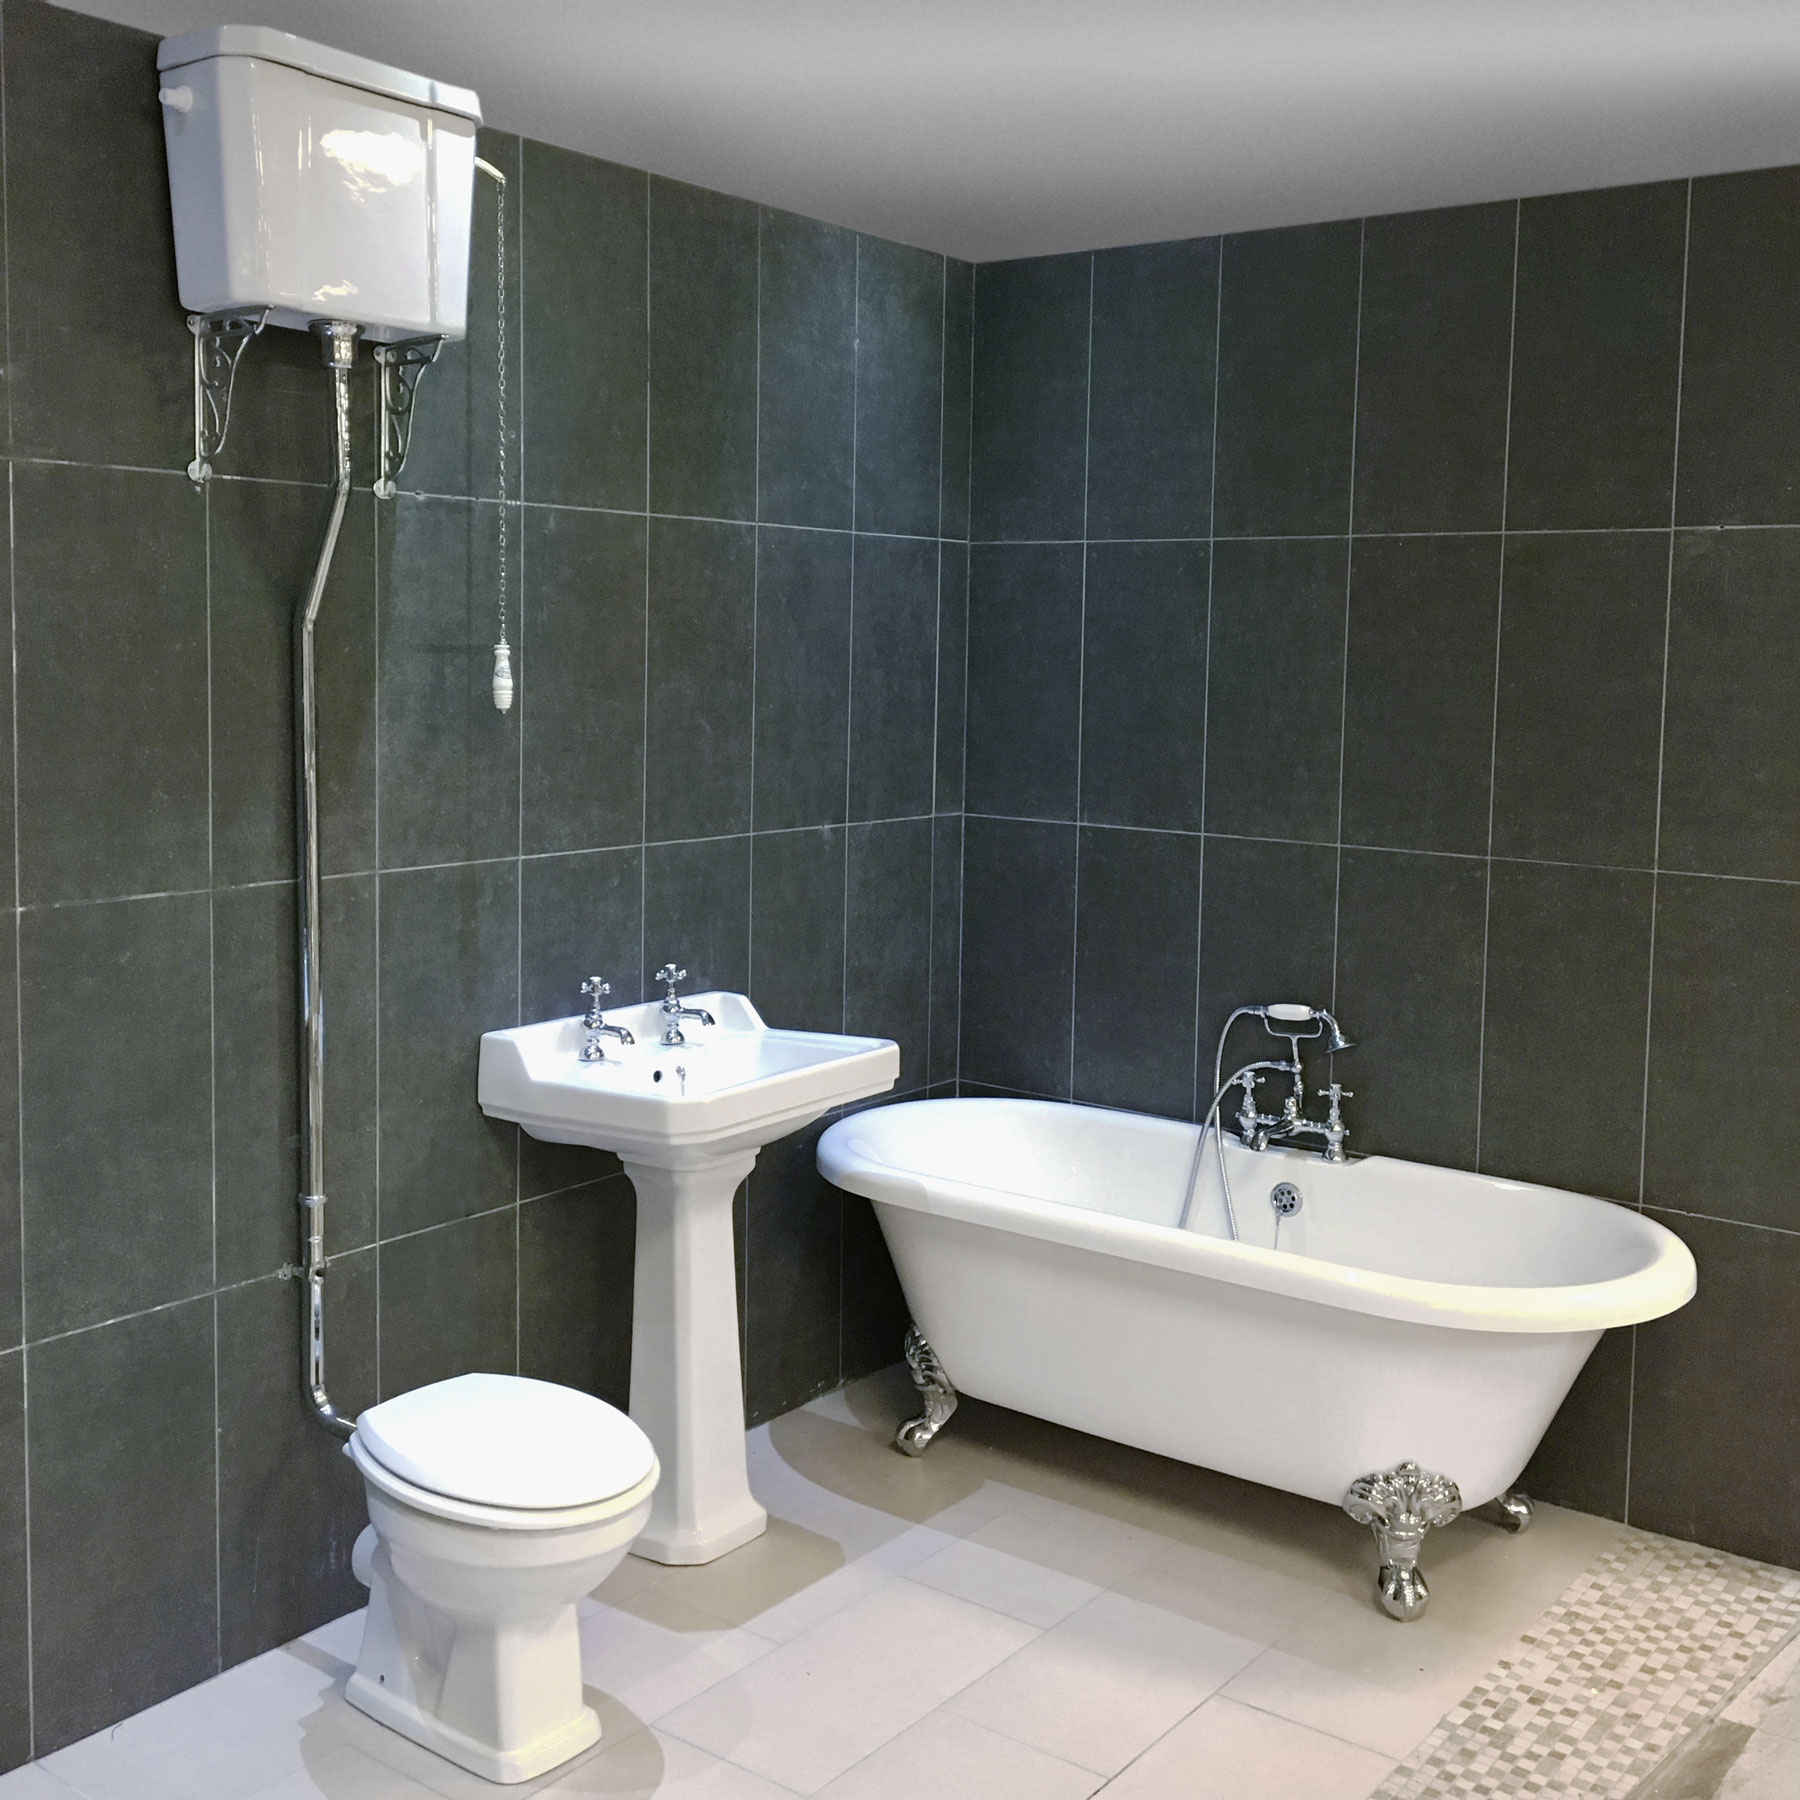 Petworth Traditional Roll Top Bath Suite High Level Toilet Bathroom ...